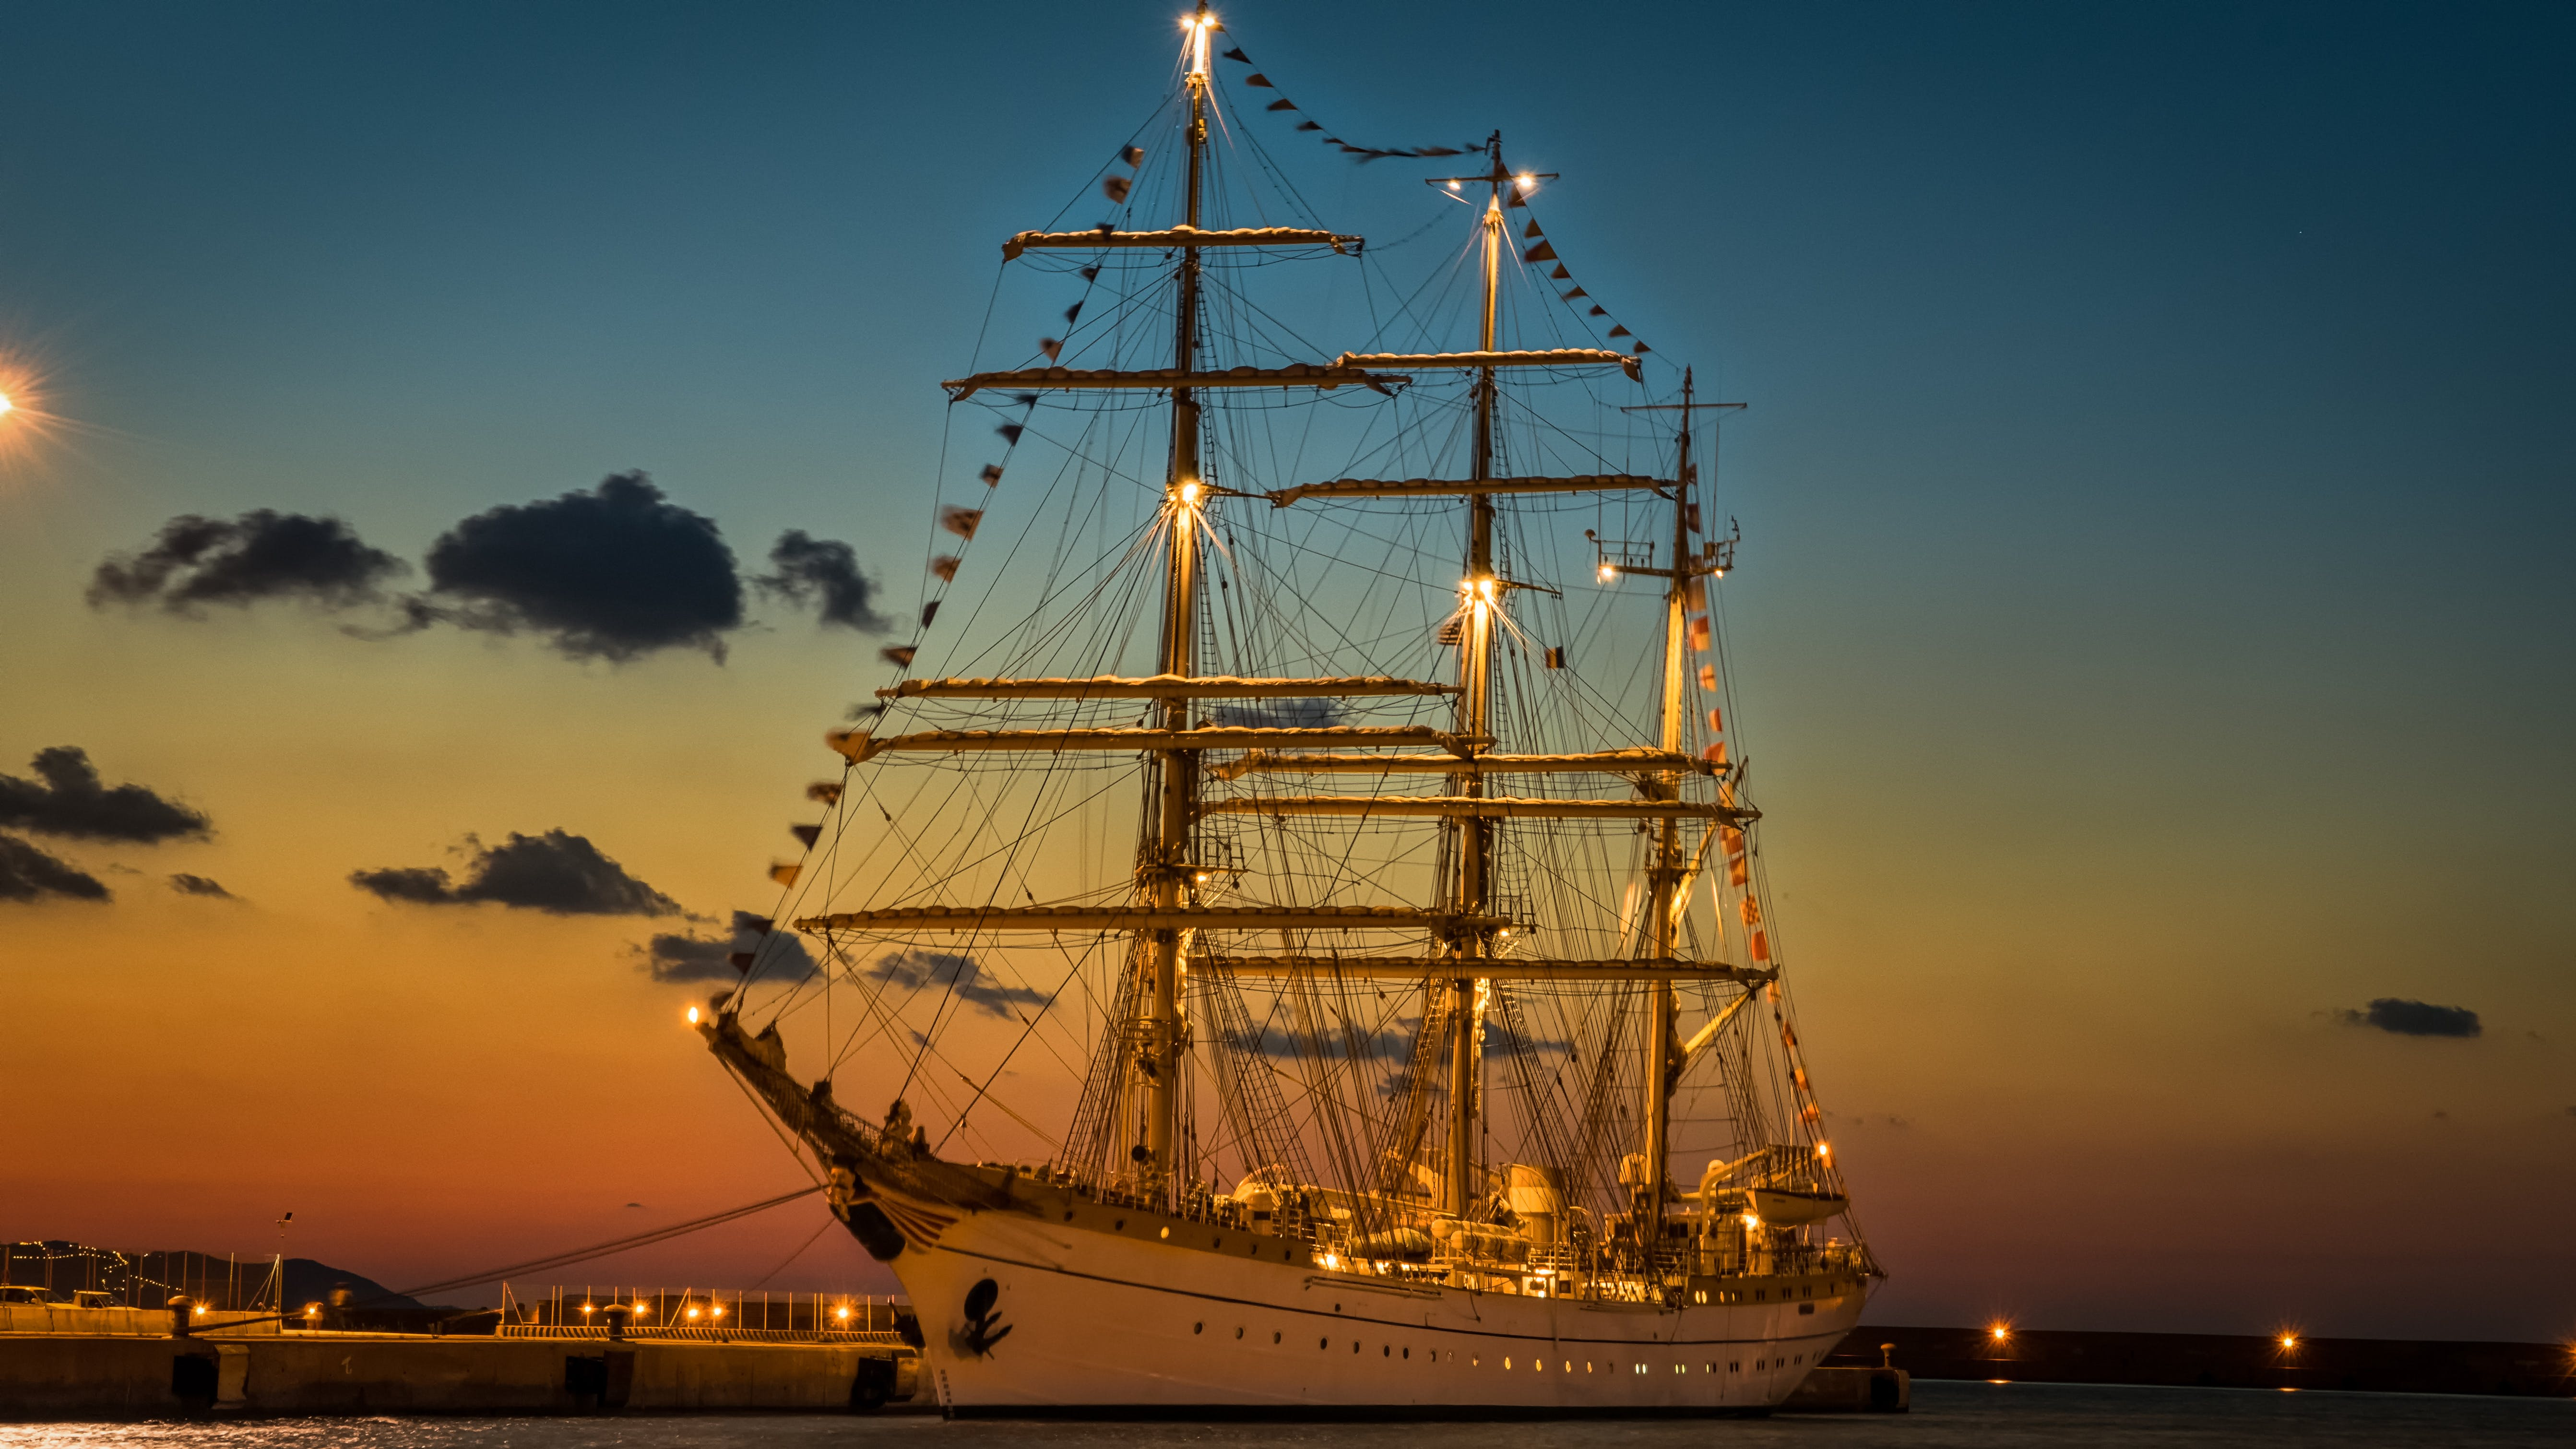 White Ship during Golden Hour